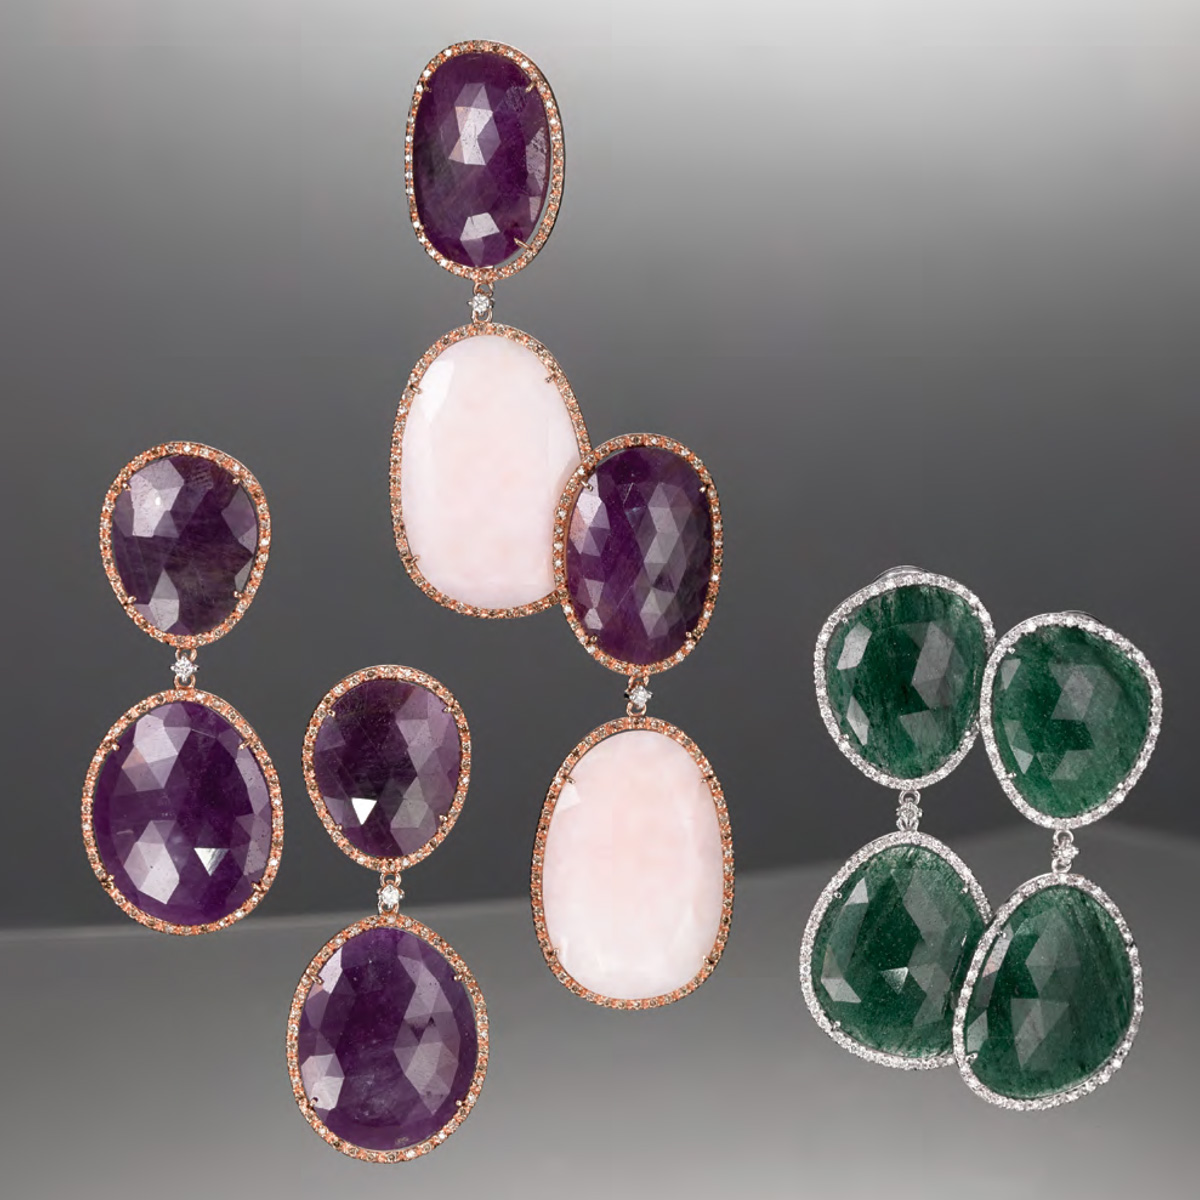 Orecchini Pietre Naturali - Gemstone Earrings